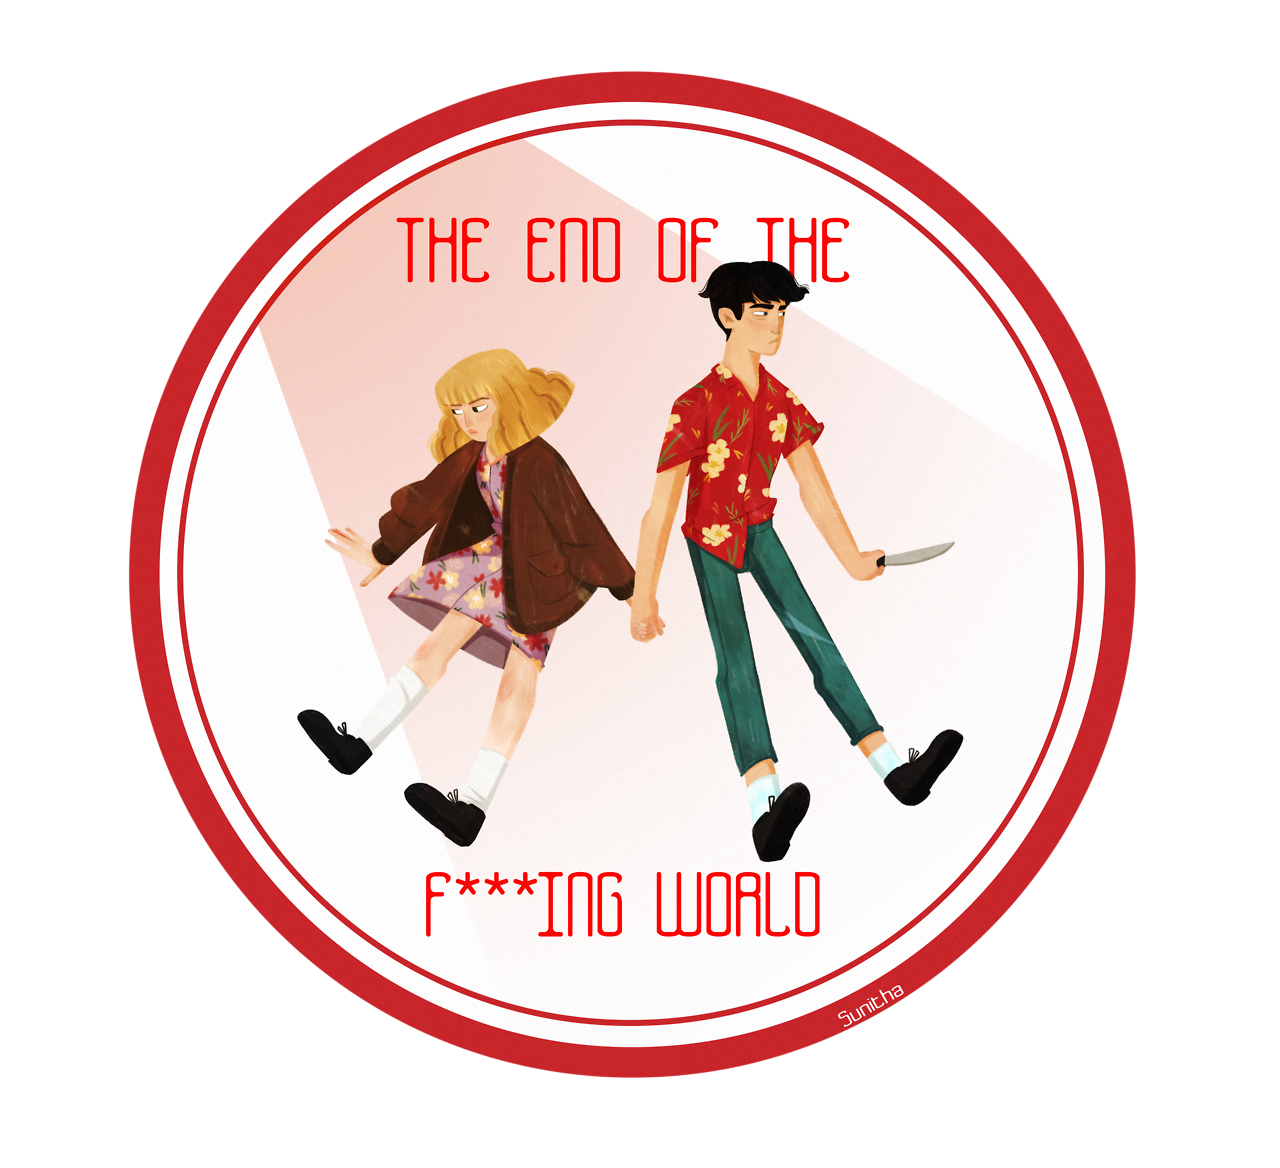 End of the world png. Sprinkly cactus f ing